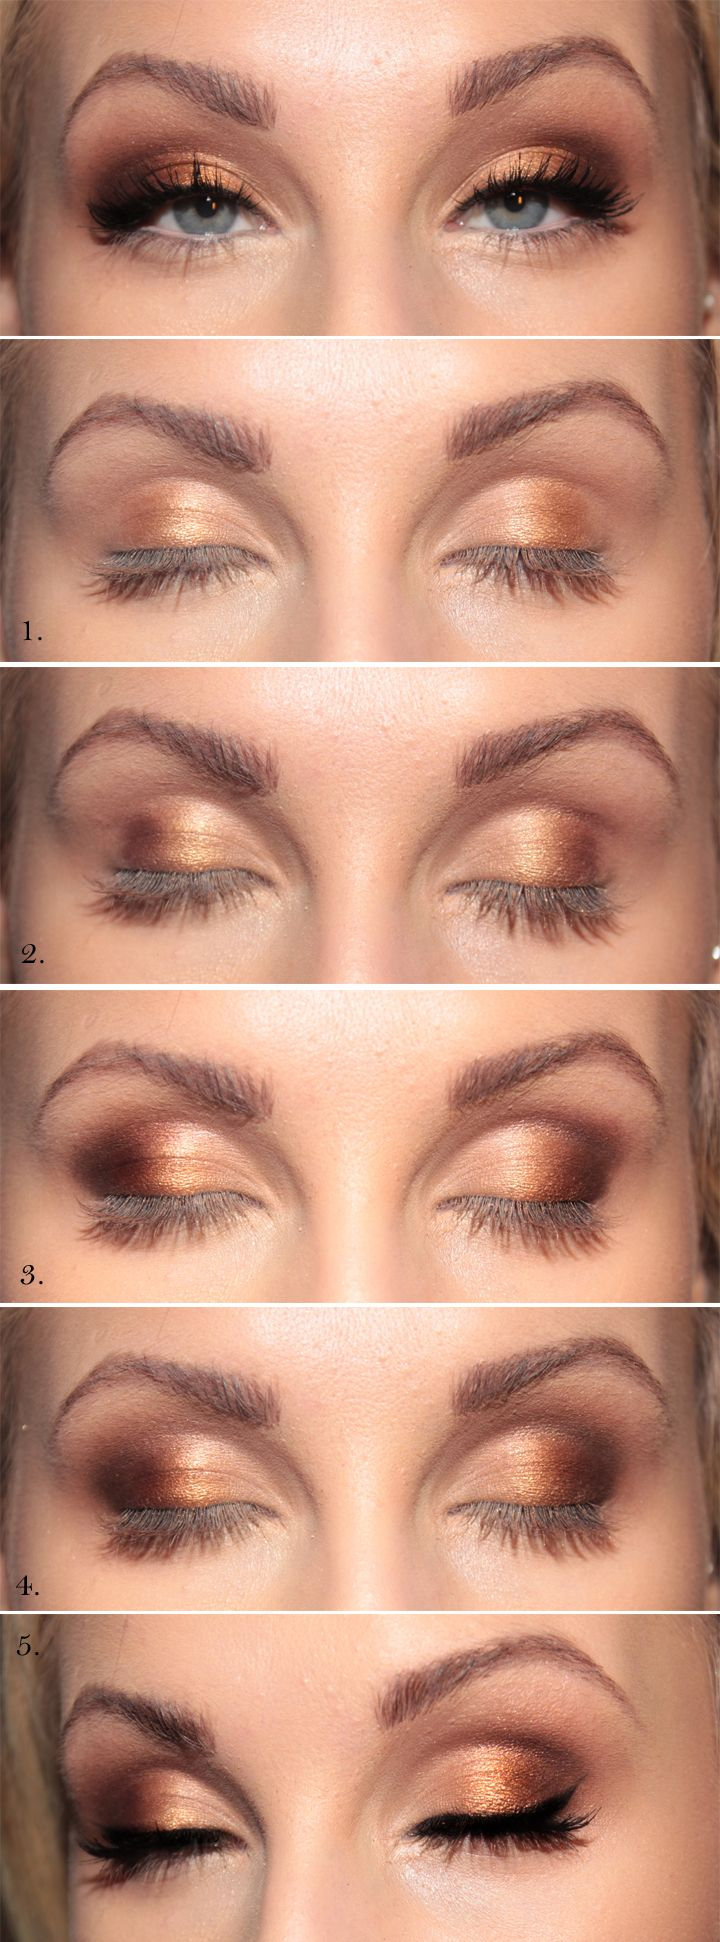 Gold gold gold!   - But less copper colored and more brown! It's so pretty....it doesn't hurt that she already has gorgeous eyes lol